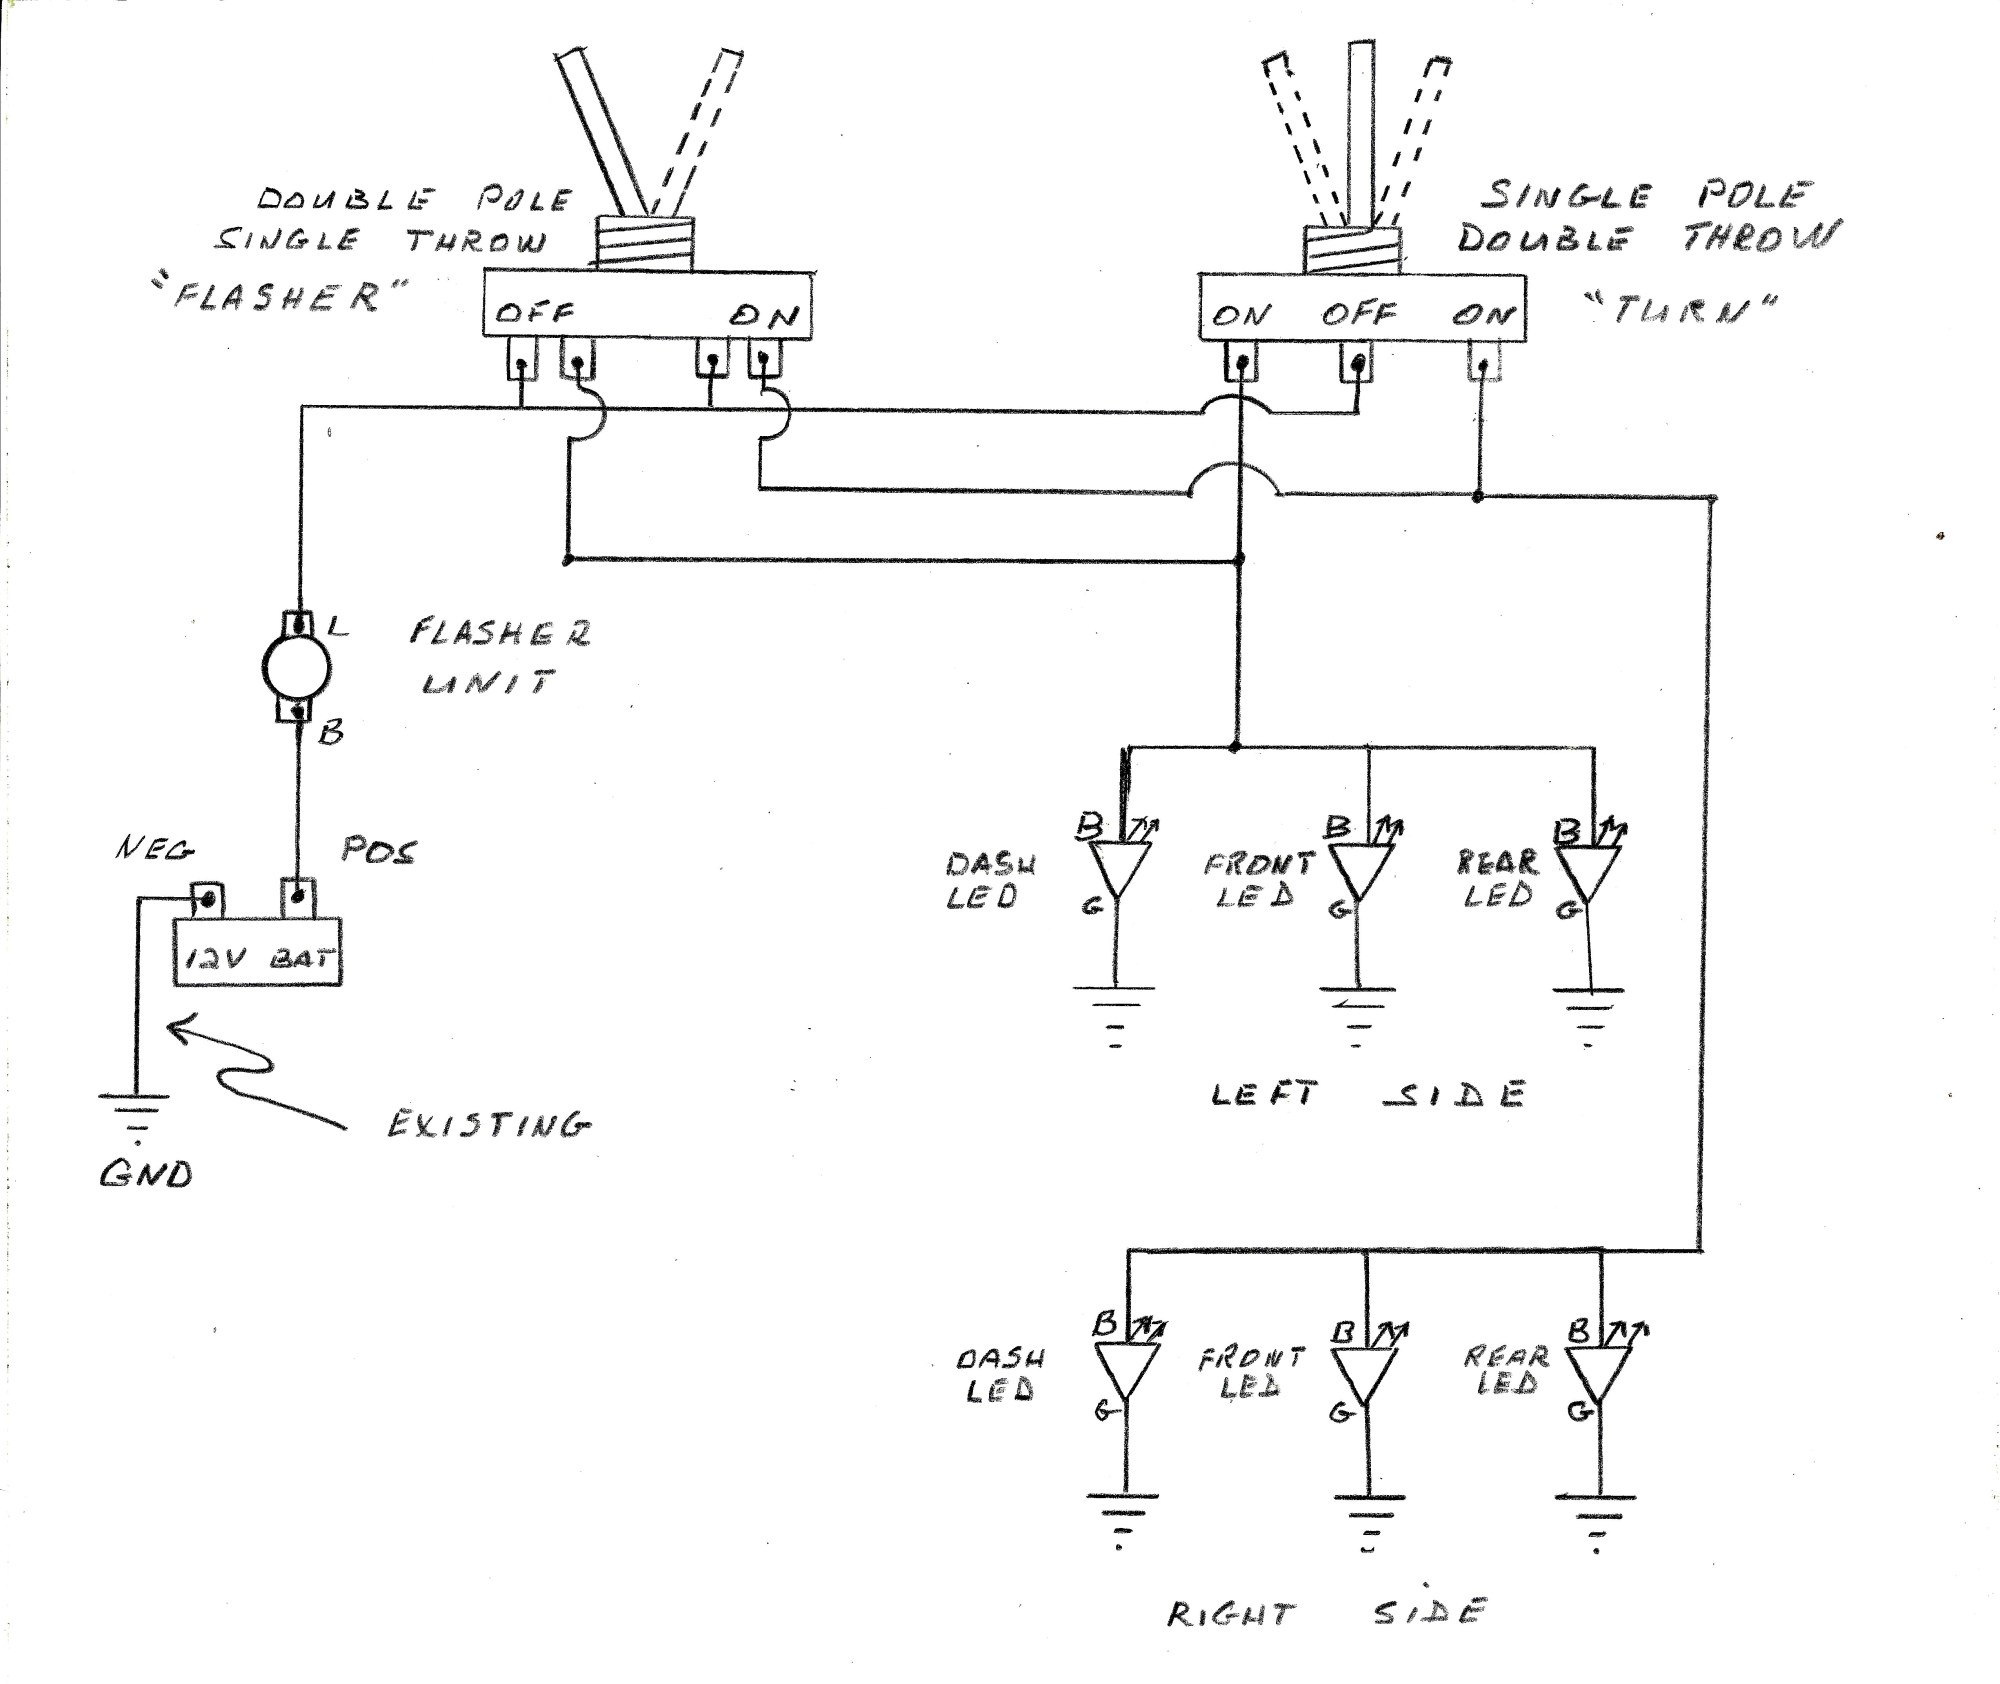 hight resolution of turn signal schematic wiring diagram page turn signal flasher schematic turn signal schematic